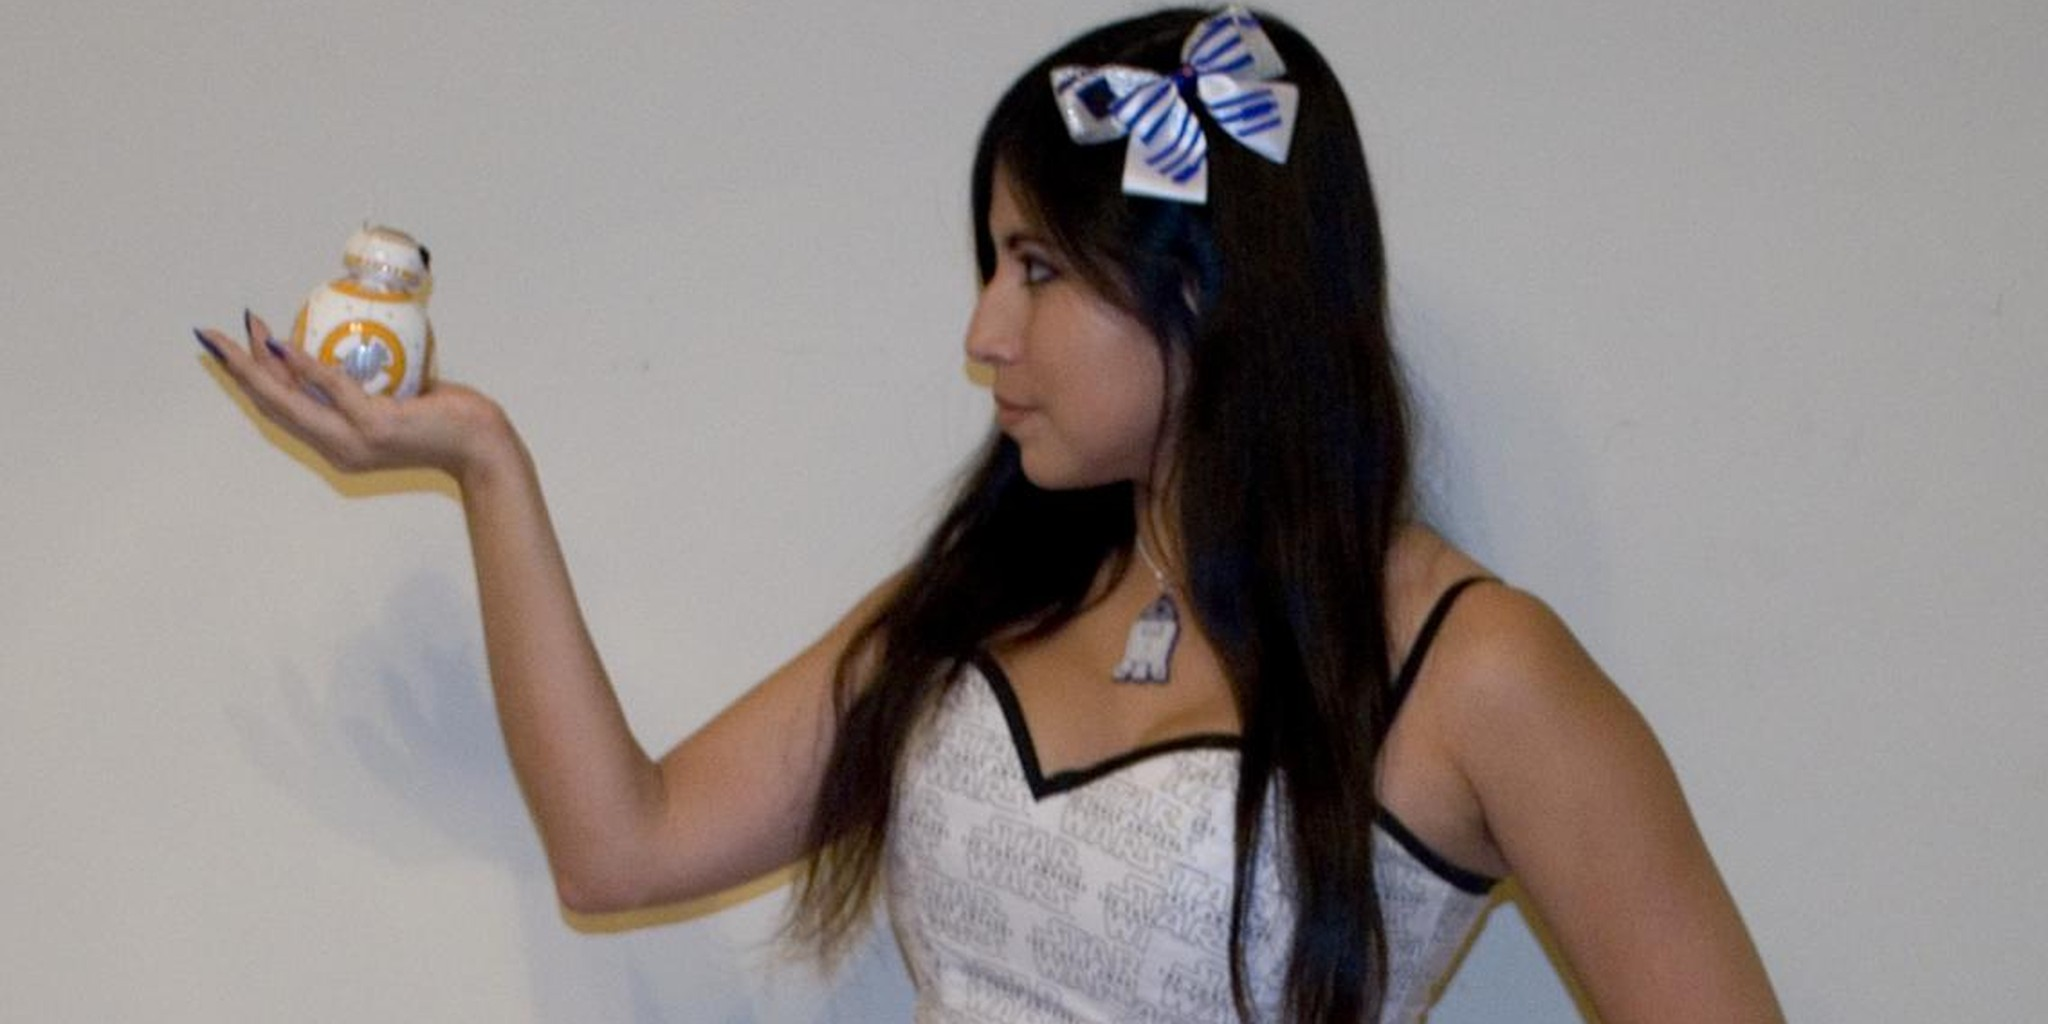 Cosplayer who created Star Wars droid dress